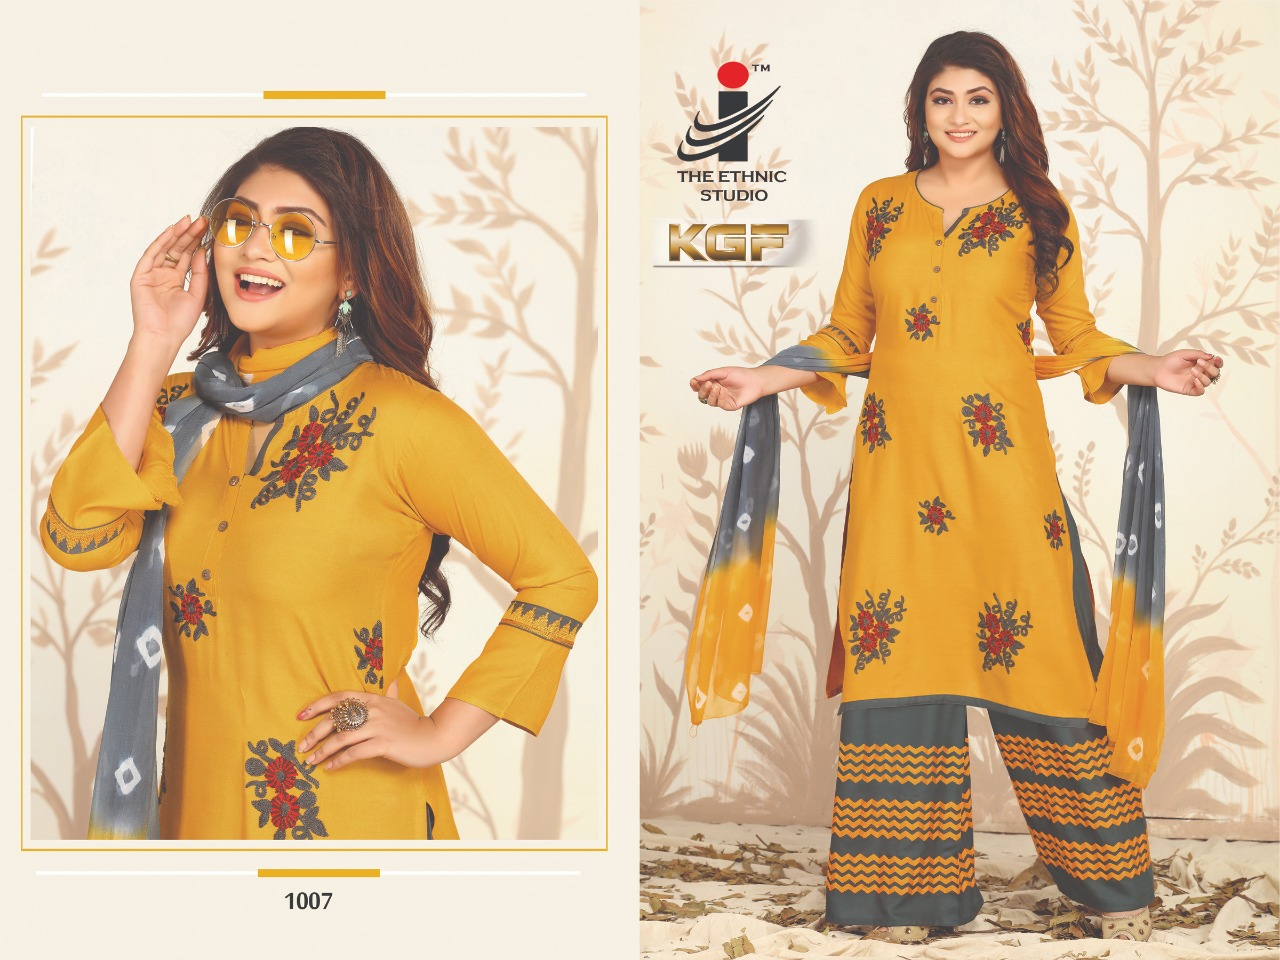 The Ethnic Studio Kgf collection 8